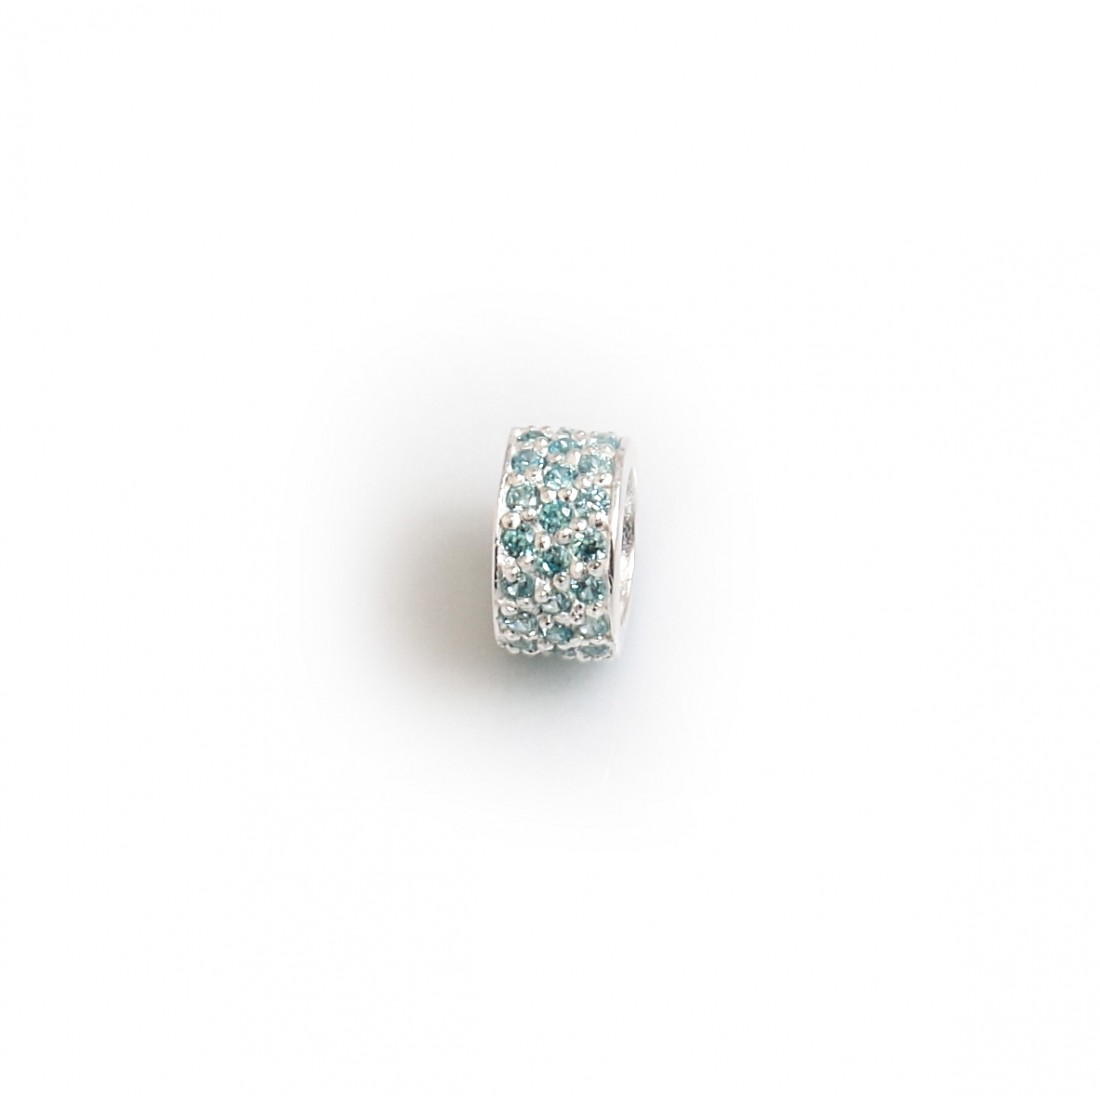 Exclusive Sterling Silver & Turquoise CZ Starlight Roller Charm Bead